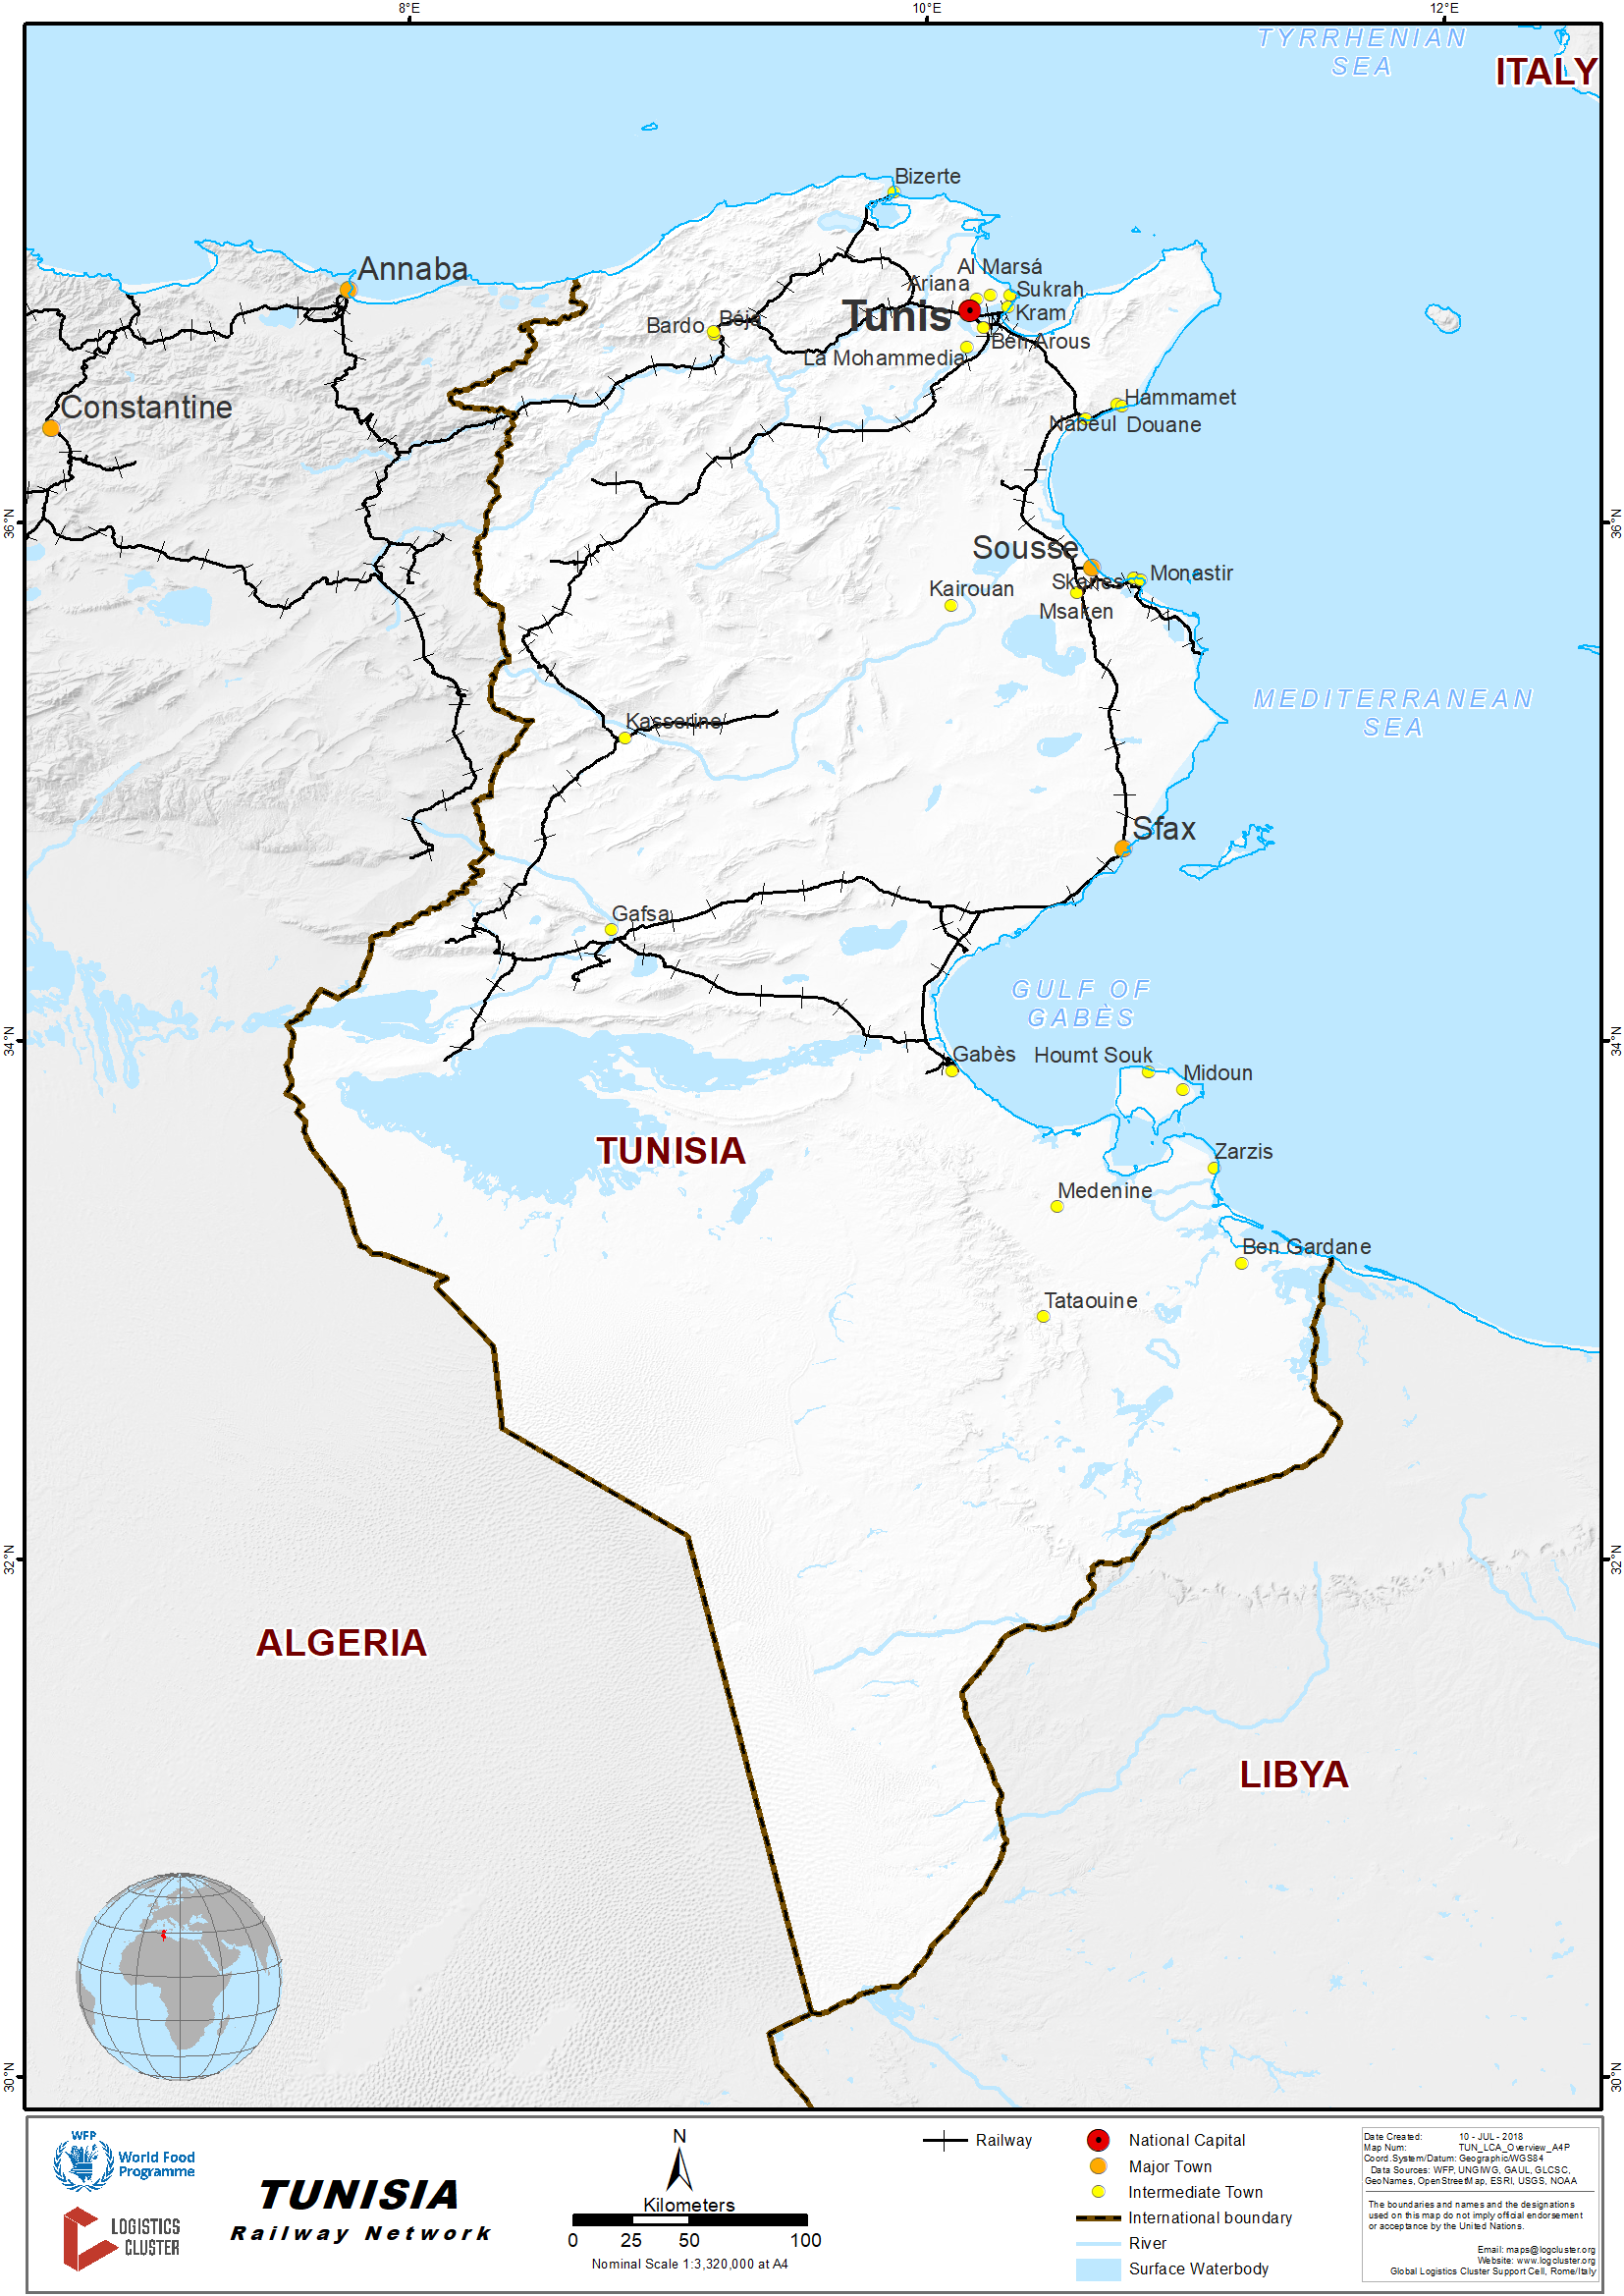 2 4 Tunisia Railway Assessment - Logistics Capacity